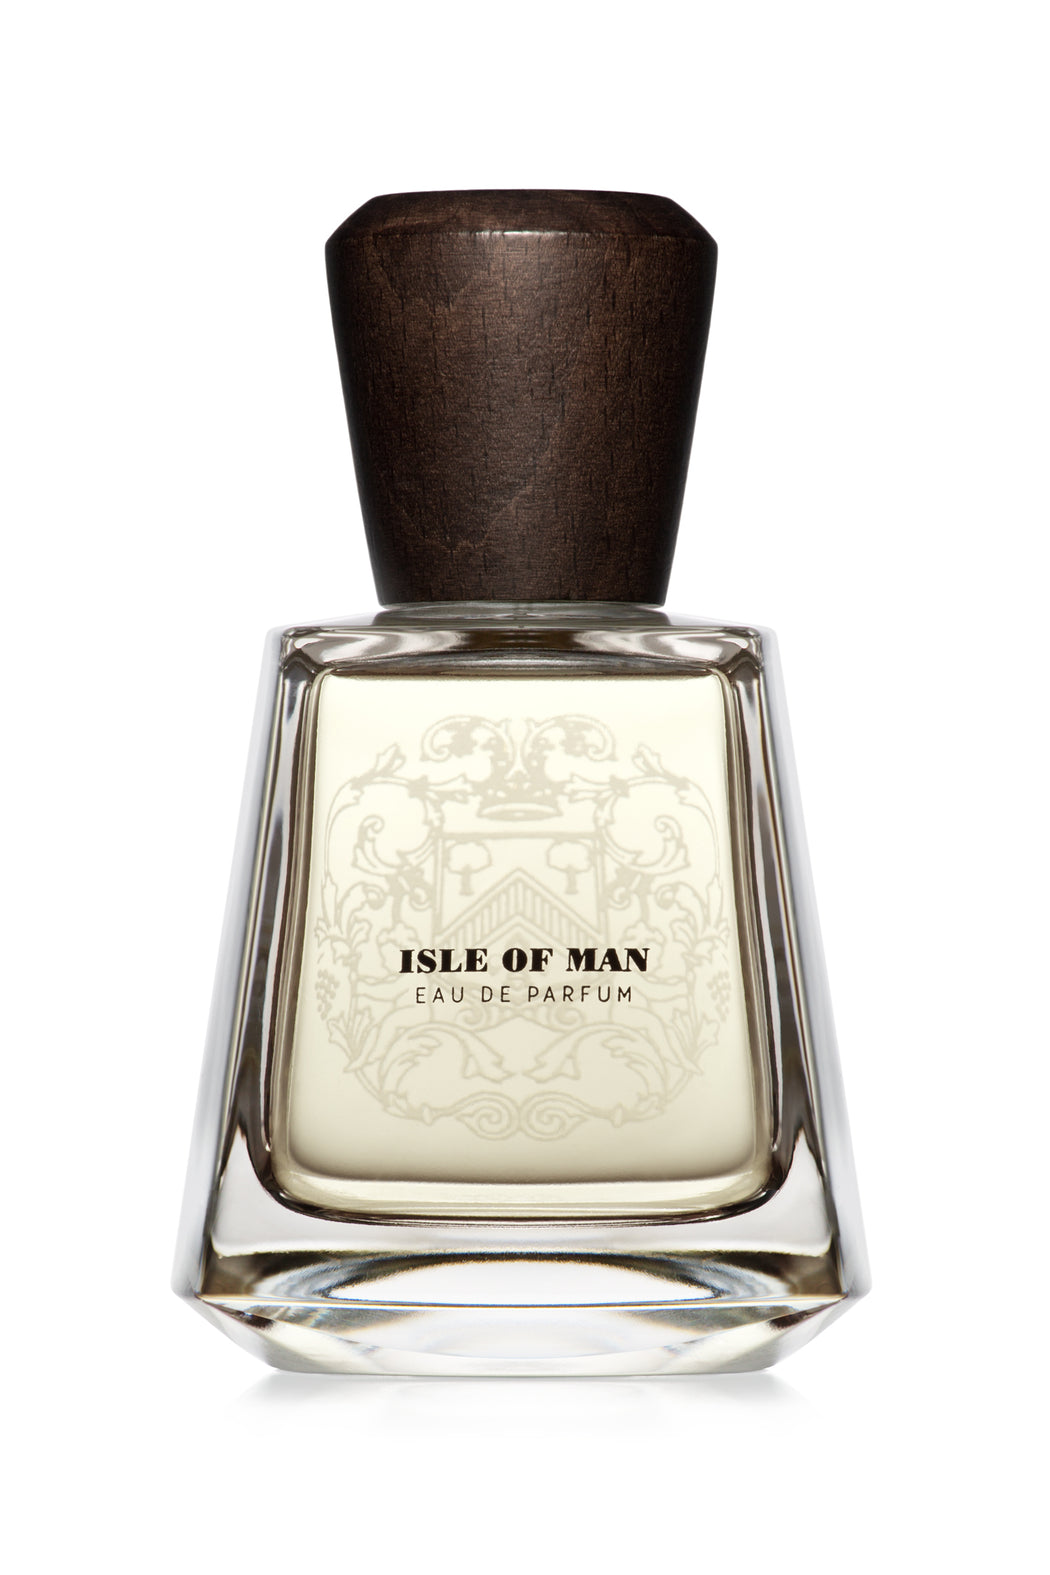 P.FRAPIN & CIE: Isle of Man 100ml